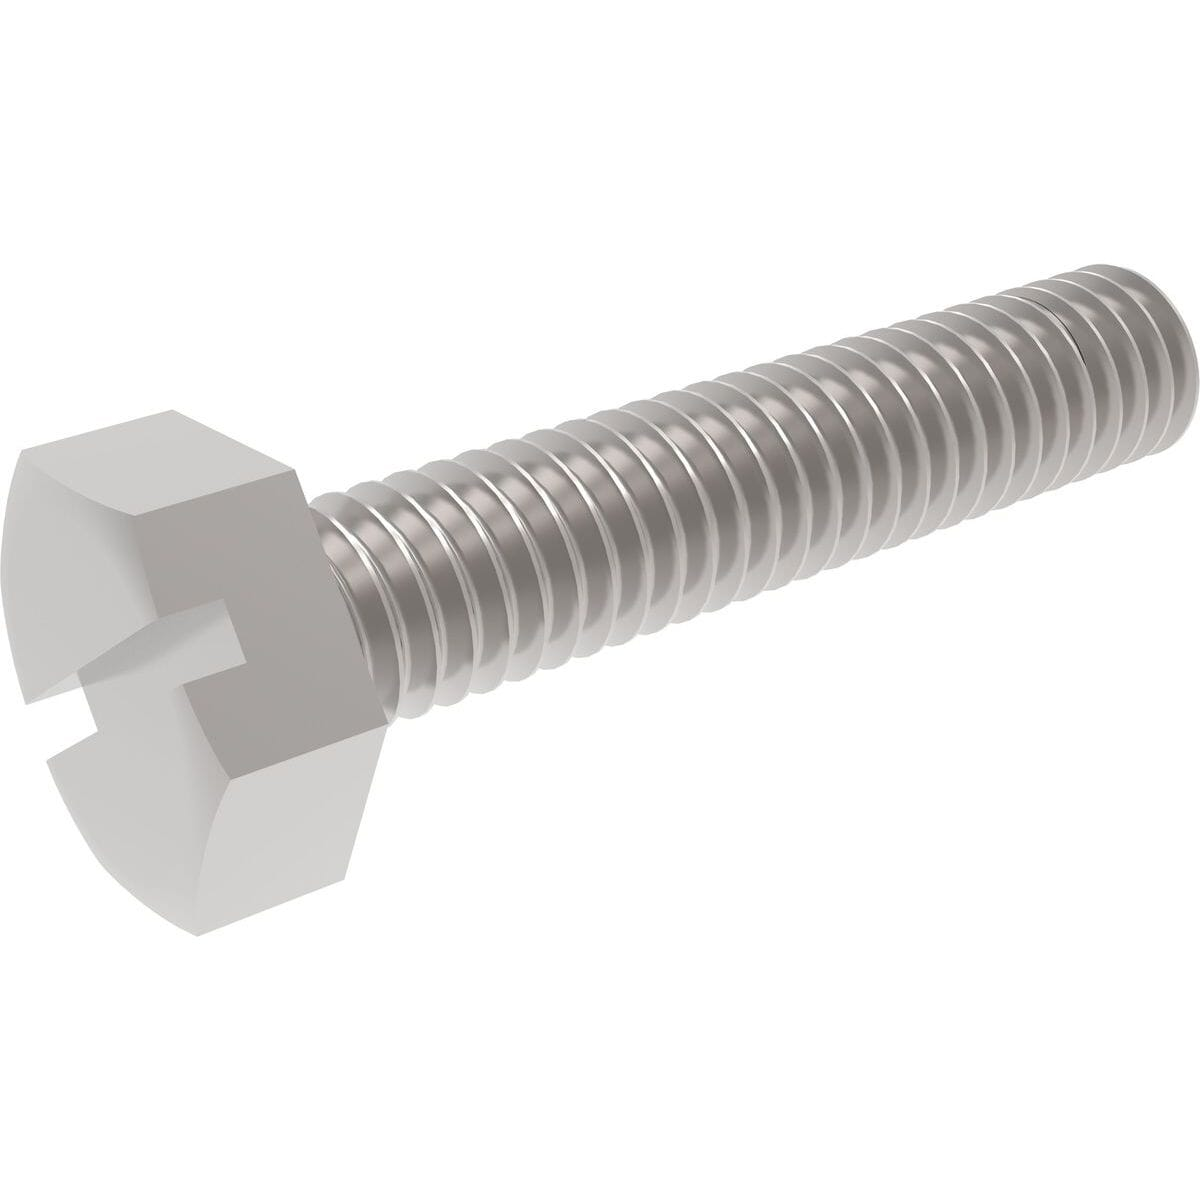 A4 STAINLESS STEEL M4 x 0.7mm STANDARD PITCH Metric HEX HEAD SET  BOLTS DIN 933